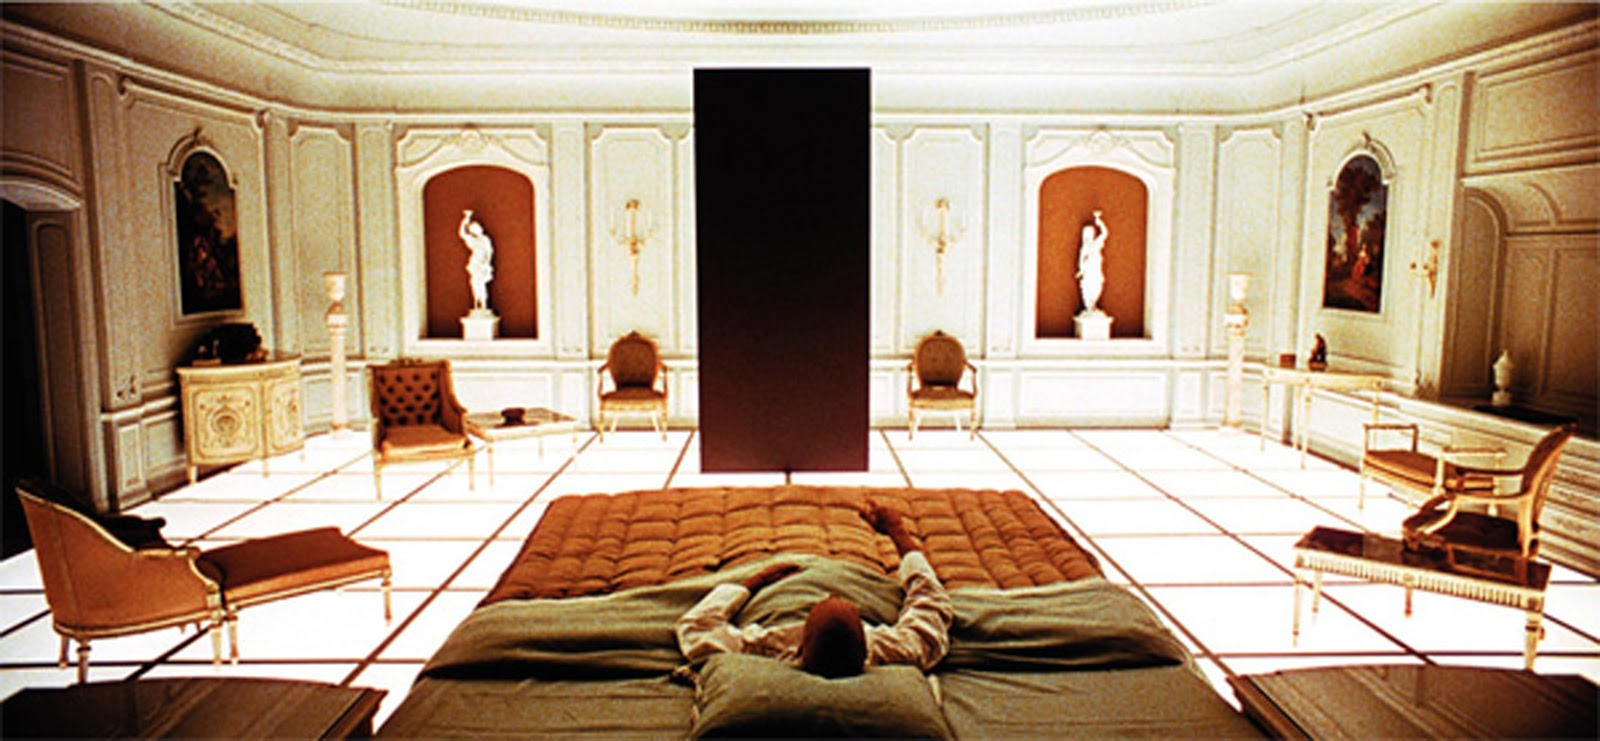 a review of stanley kubricks film 2001 a space odyssey During the making of stanley kubrick's 2001: a space odyssey, the film's  narrative trajectory pointed inexorably toward a big ending, even a.